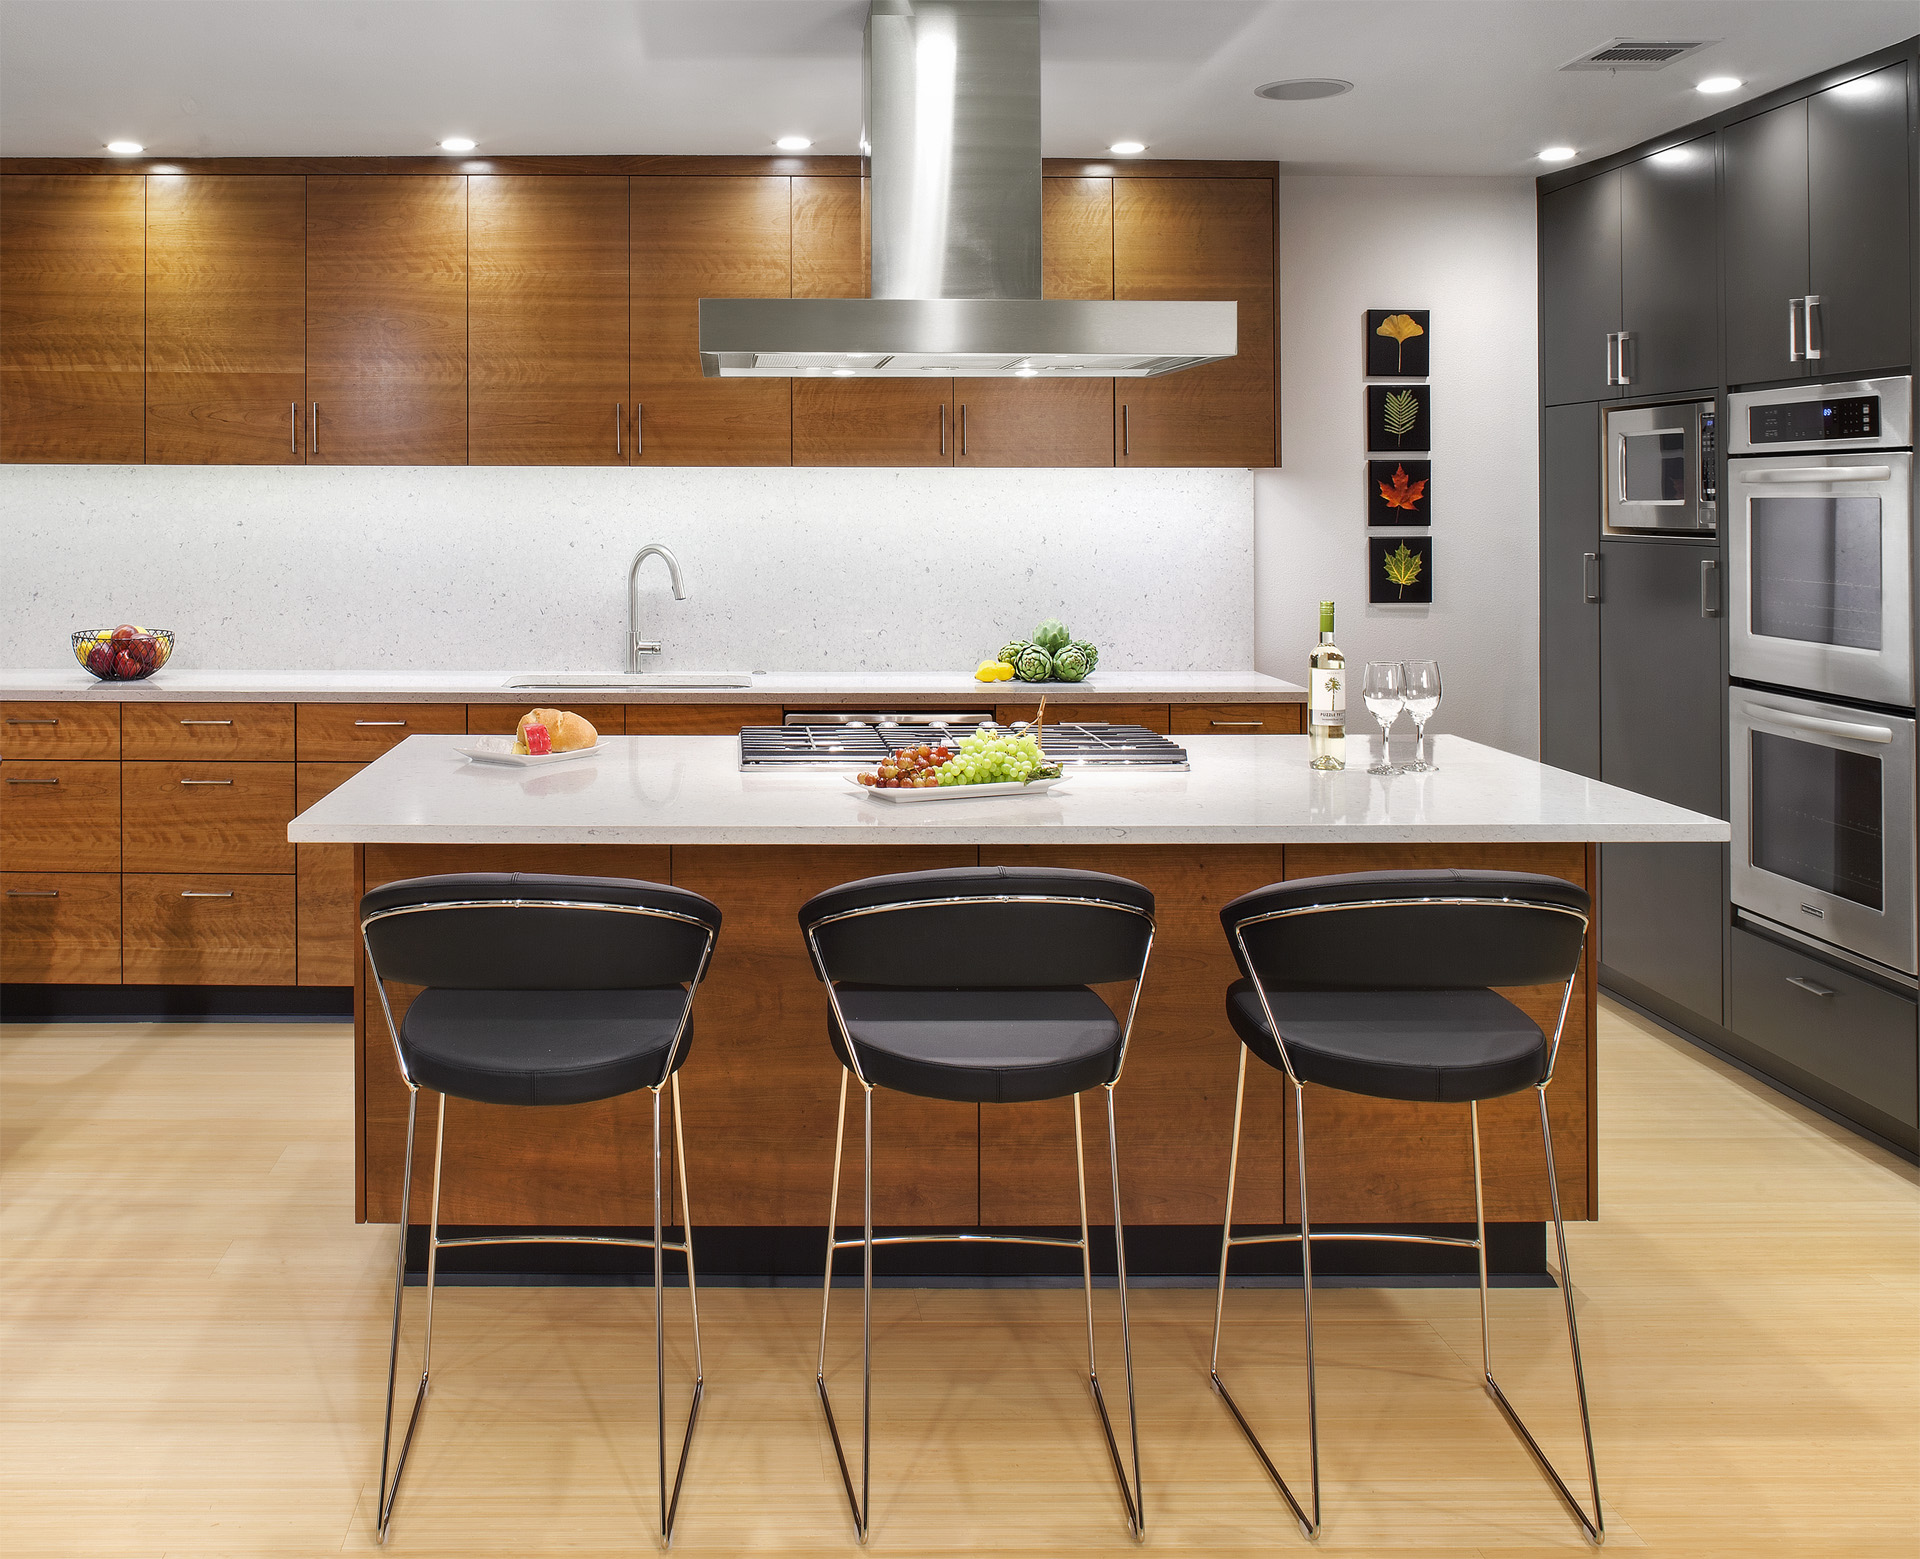 1A7 SLEEK, CONTEMPORARY kitchen copy